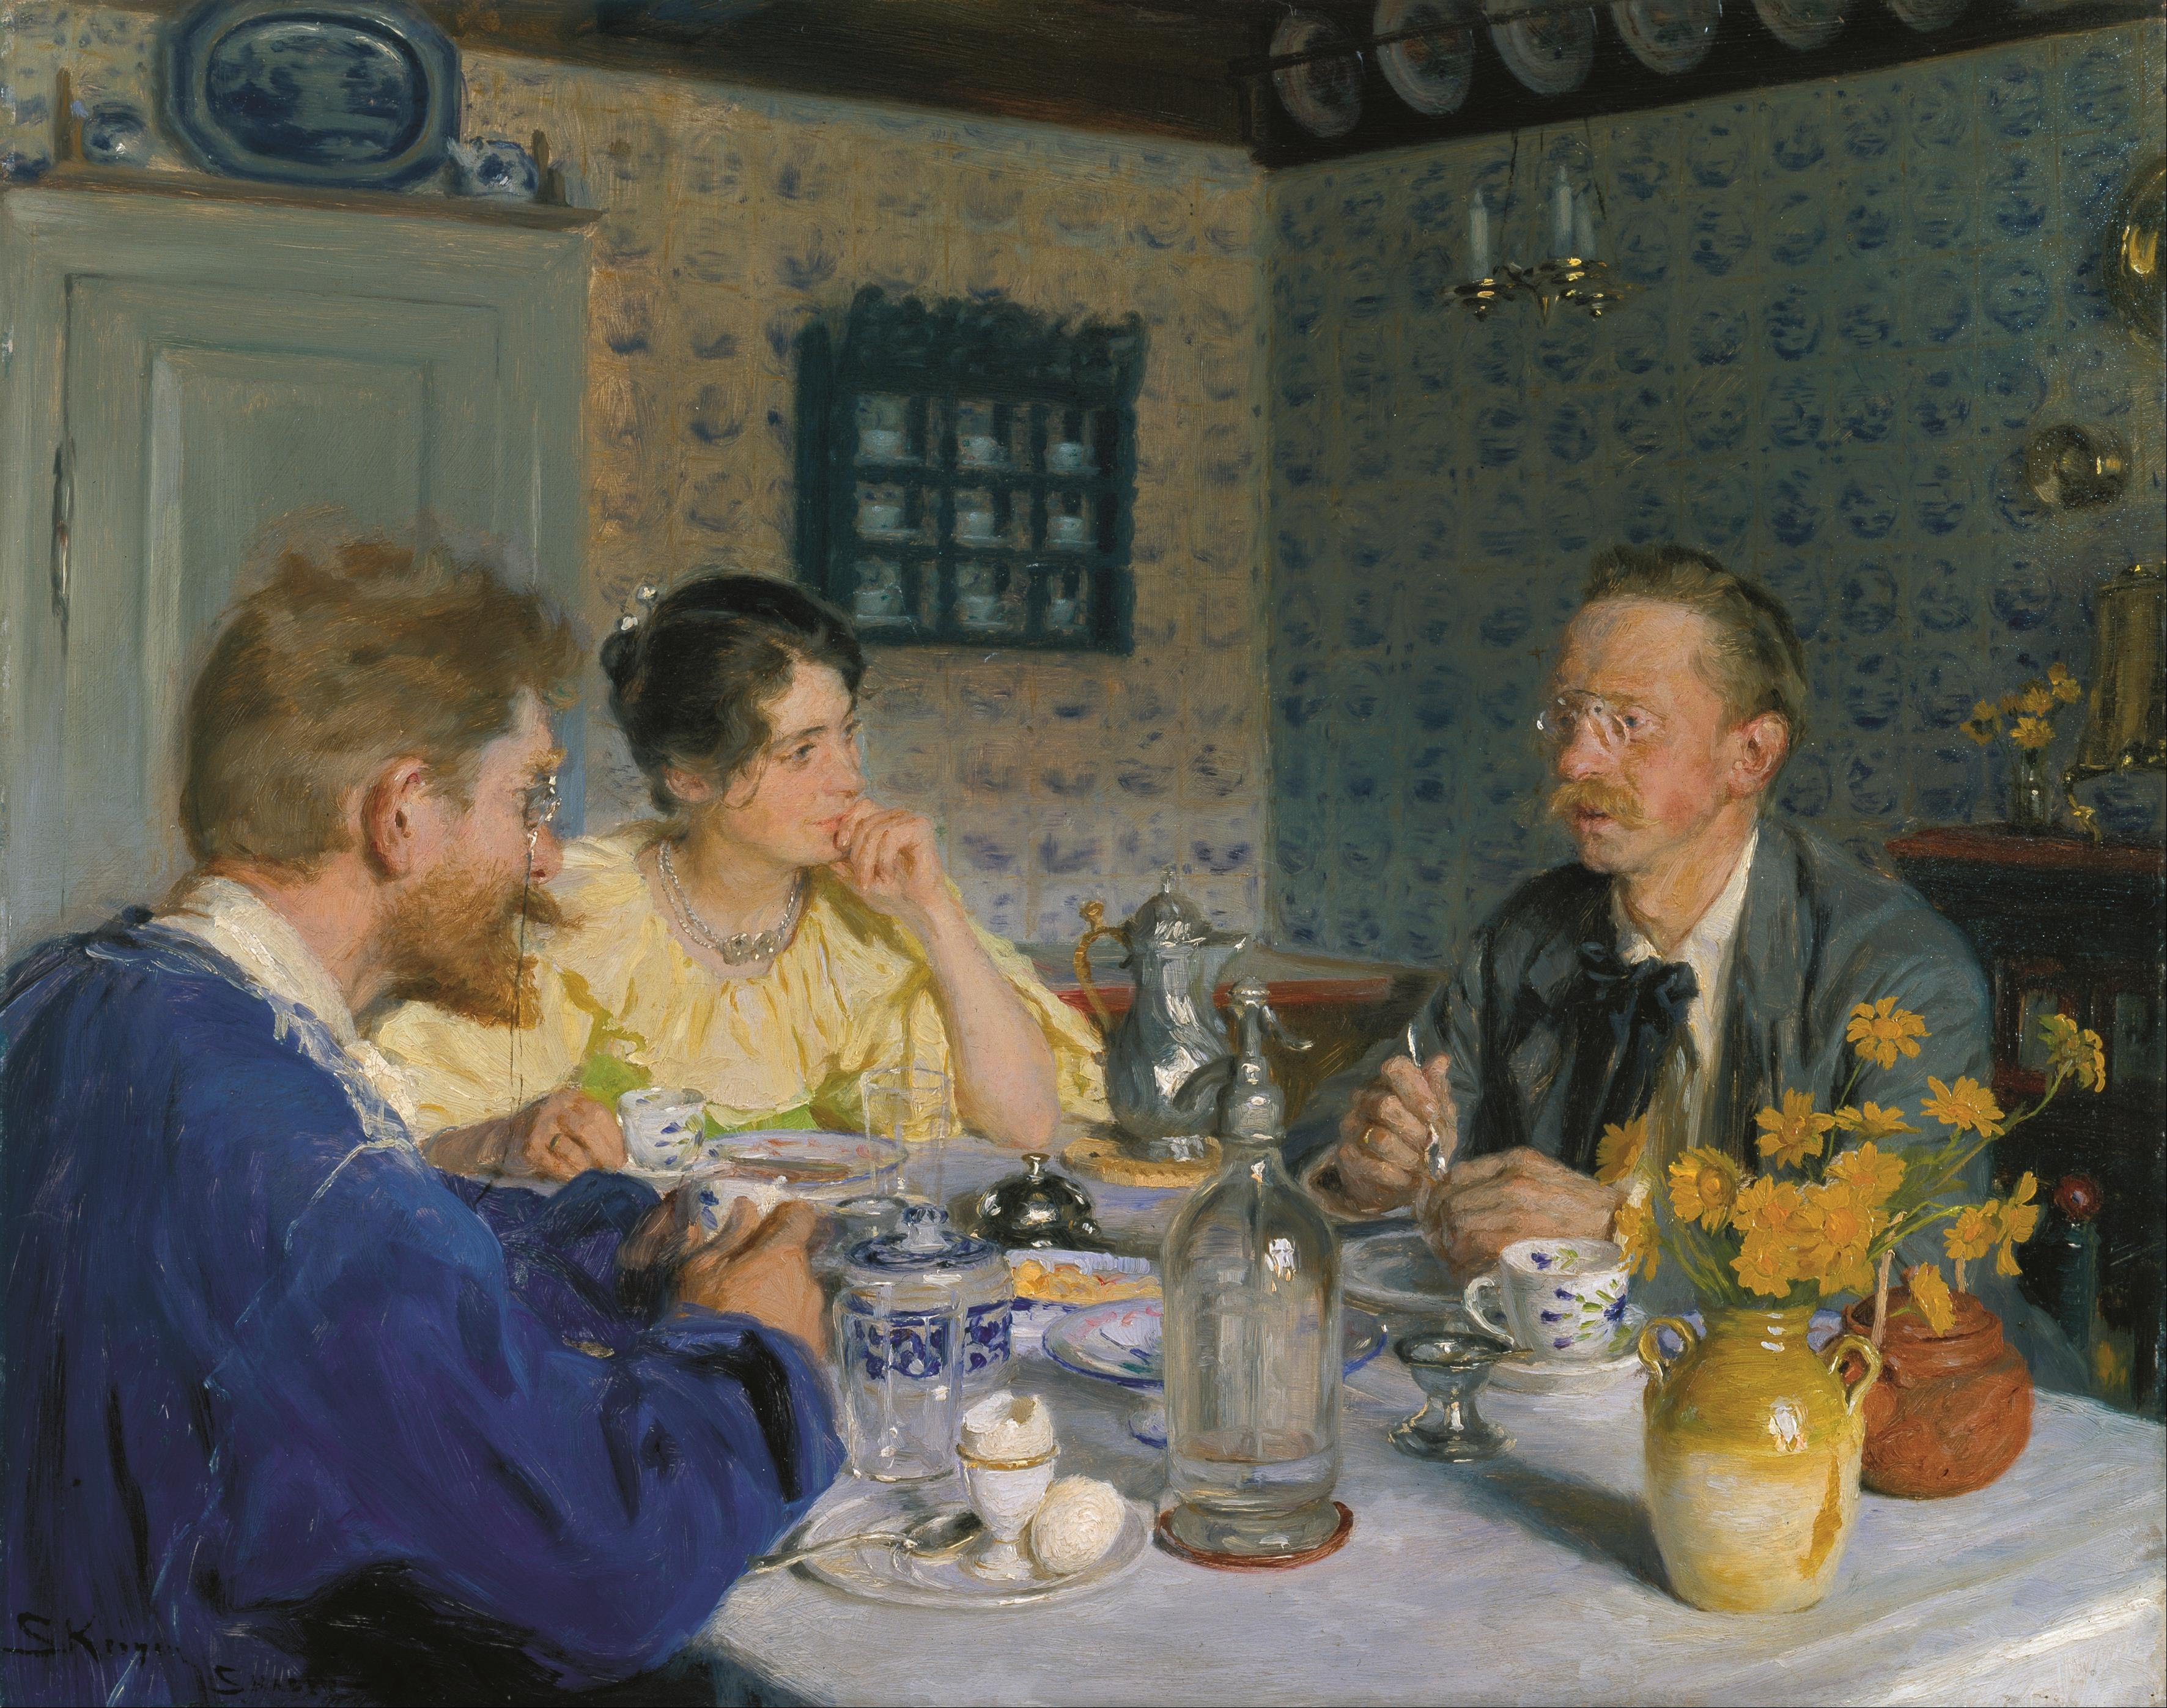 Peder_Severin_Kr%C3%B8yer_-_A_luncheon._The_artist%2C_his_wife_and_the_writer_Otto_Benzon_-_Google_Art_Project.jpg